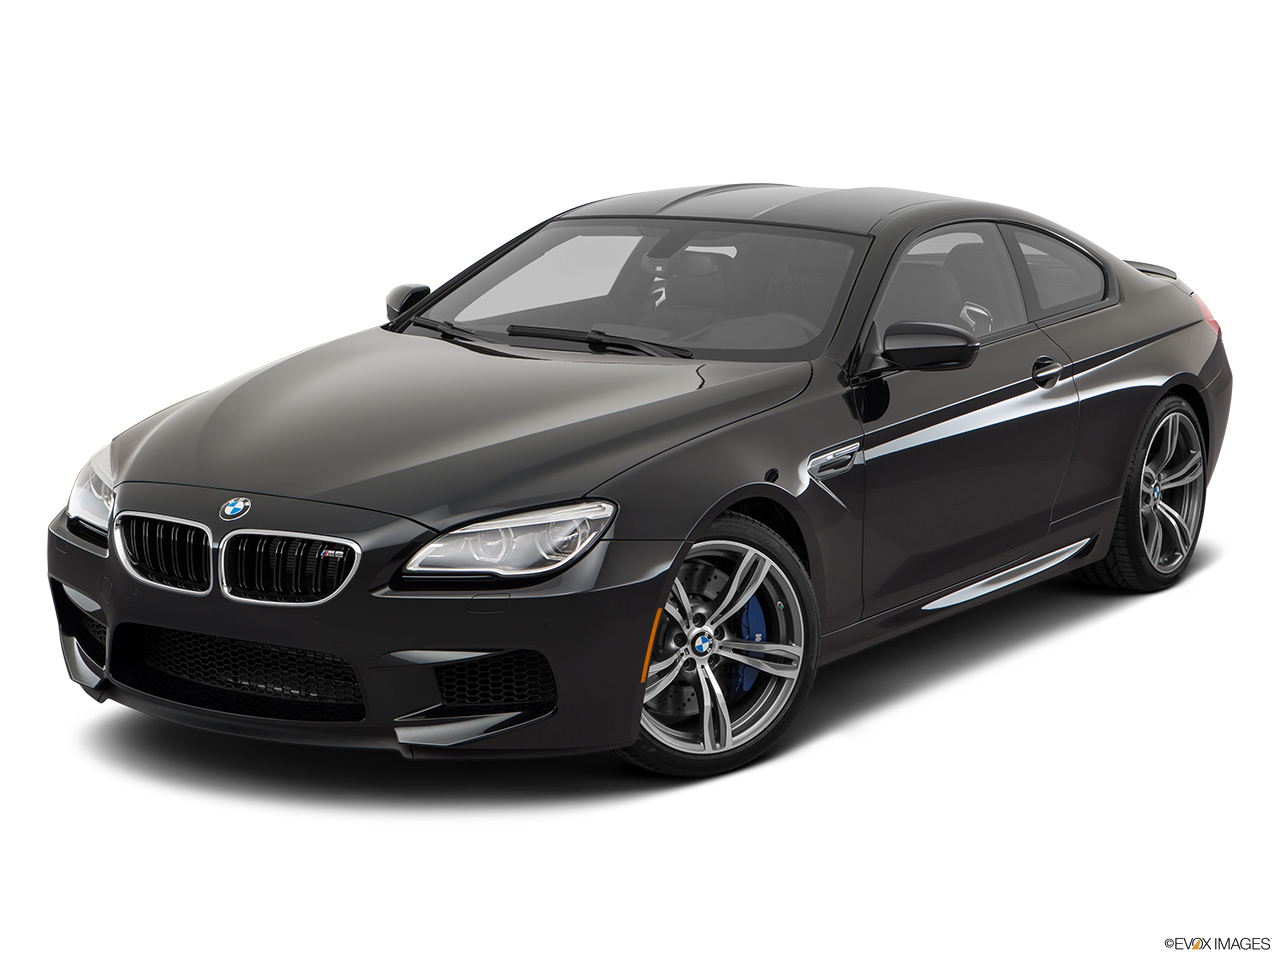 Bmw M6 Coupe 2017 4 4t In Uae New Car Prices Specs